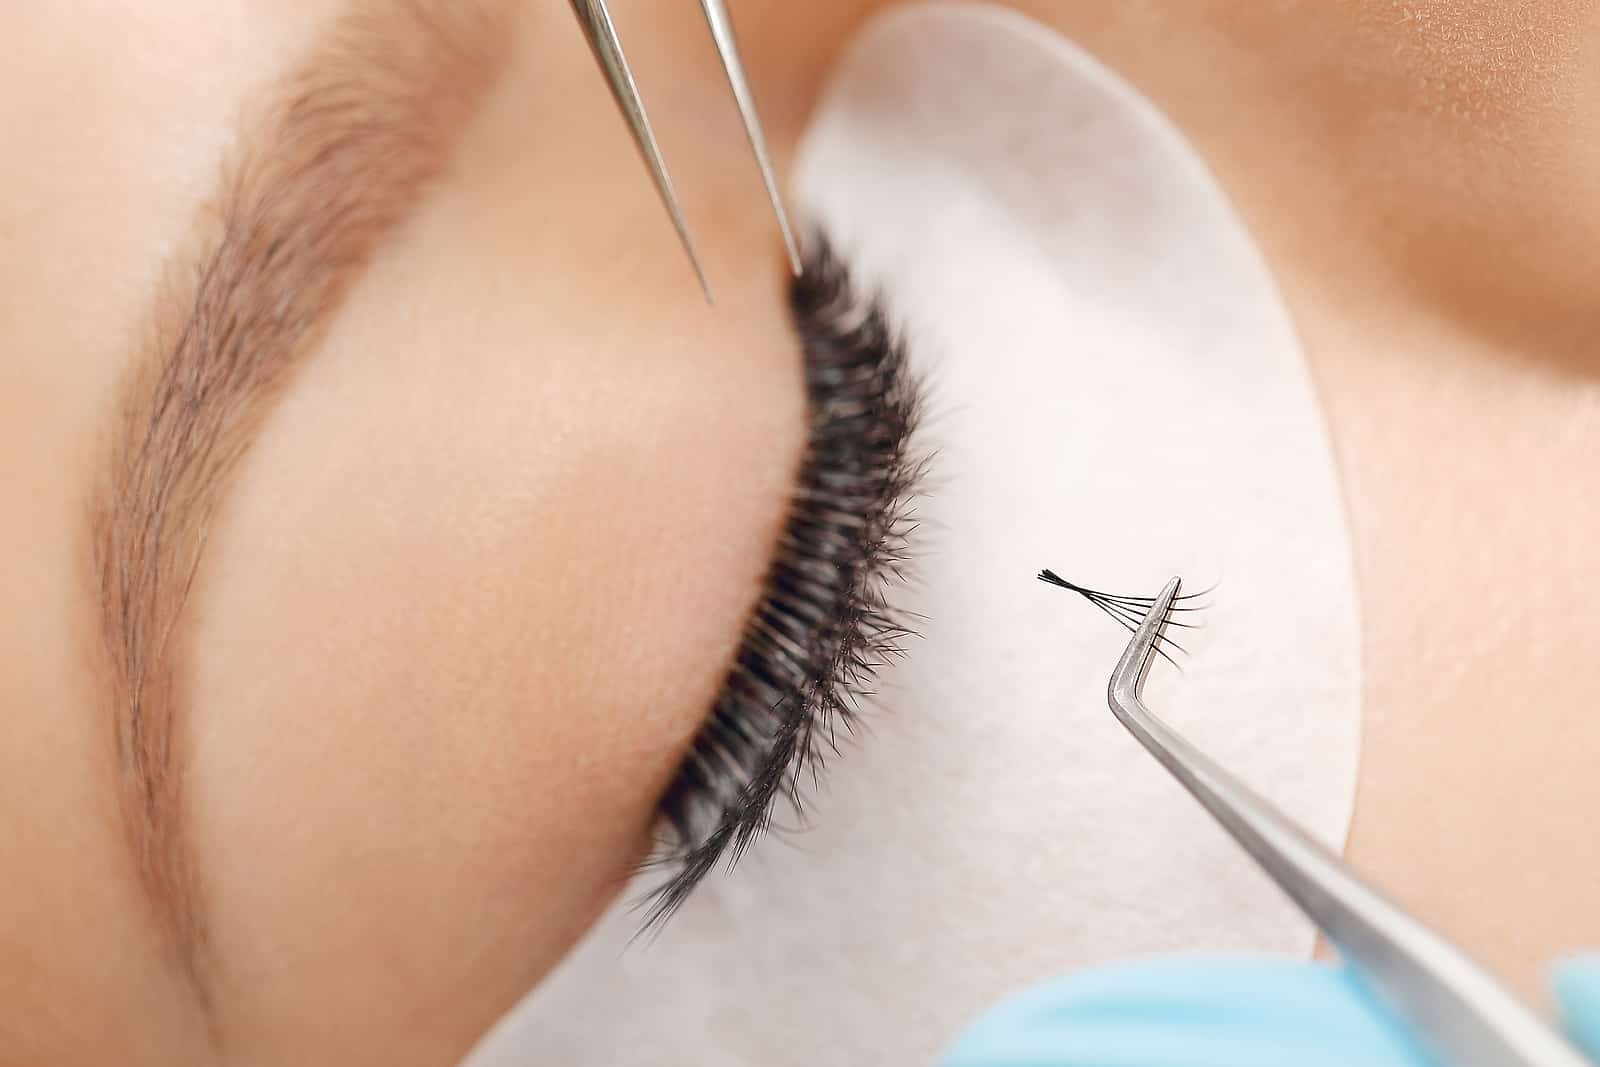 Is lash extension glue toxic? Dr. Anika explains